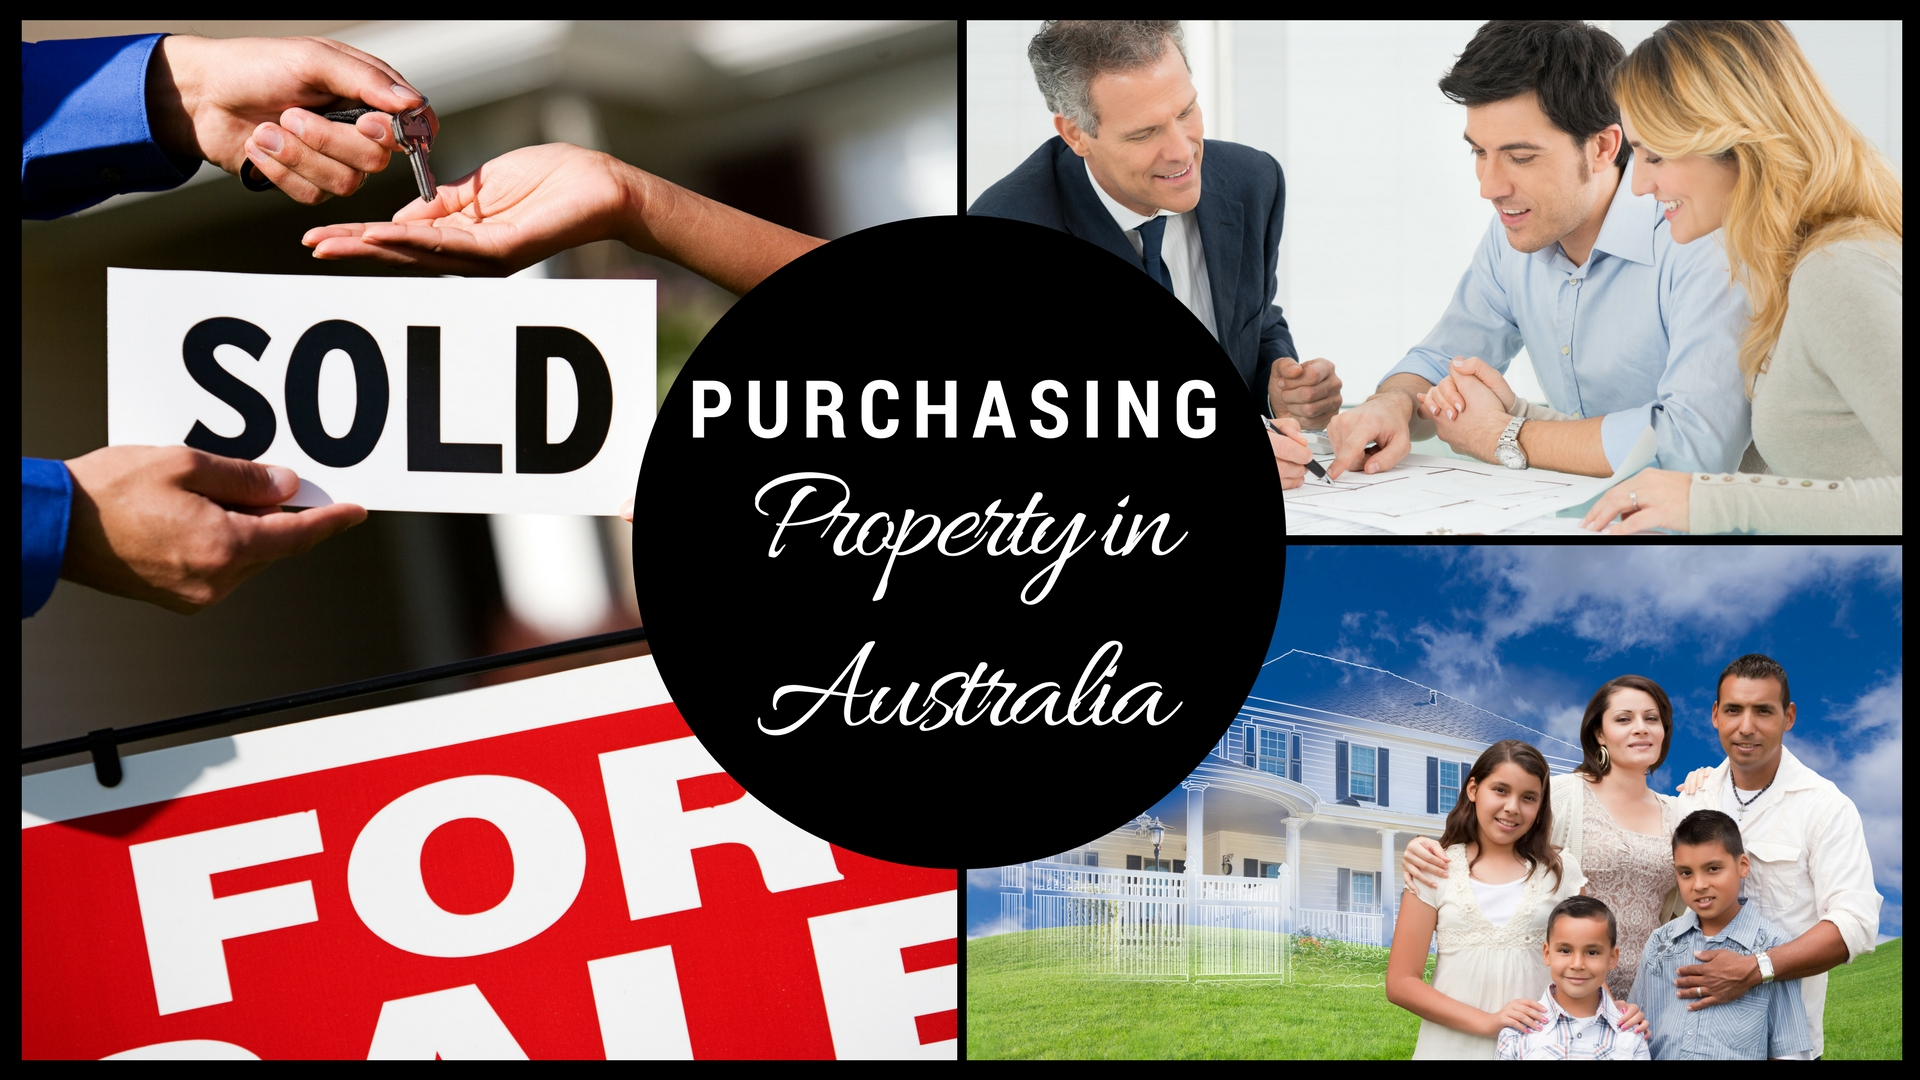 The Property Buyers Guide by Simply Altruism_Purchasing Property in Australia - So what does the typical purchasing process look like in Australia?